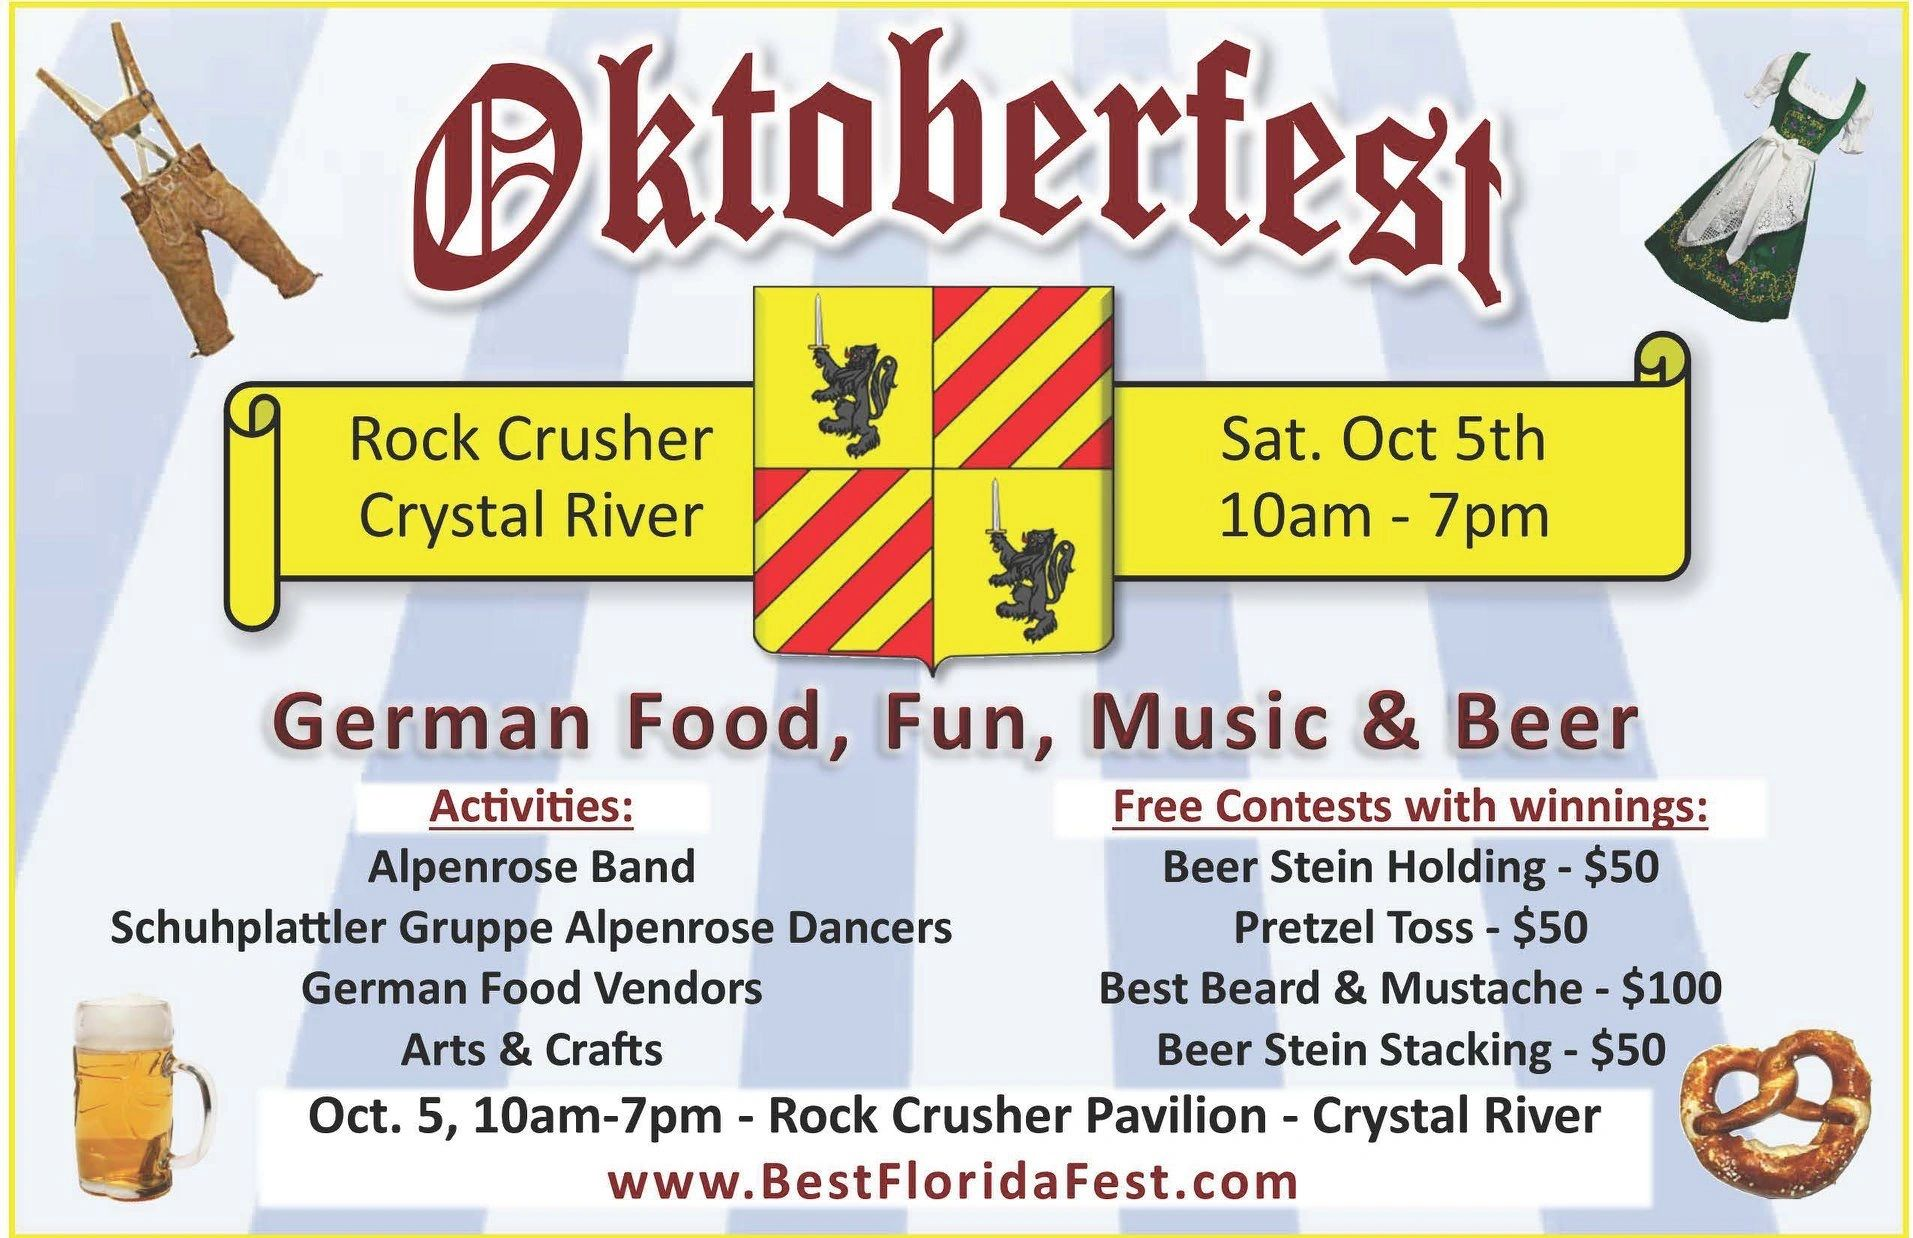 Oktoberfest, Saturday October 5, 2019 at Rock Crusher Canyon Pavilion